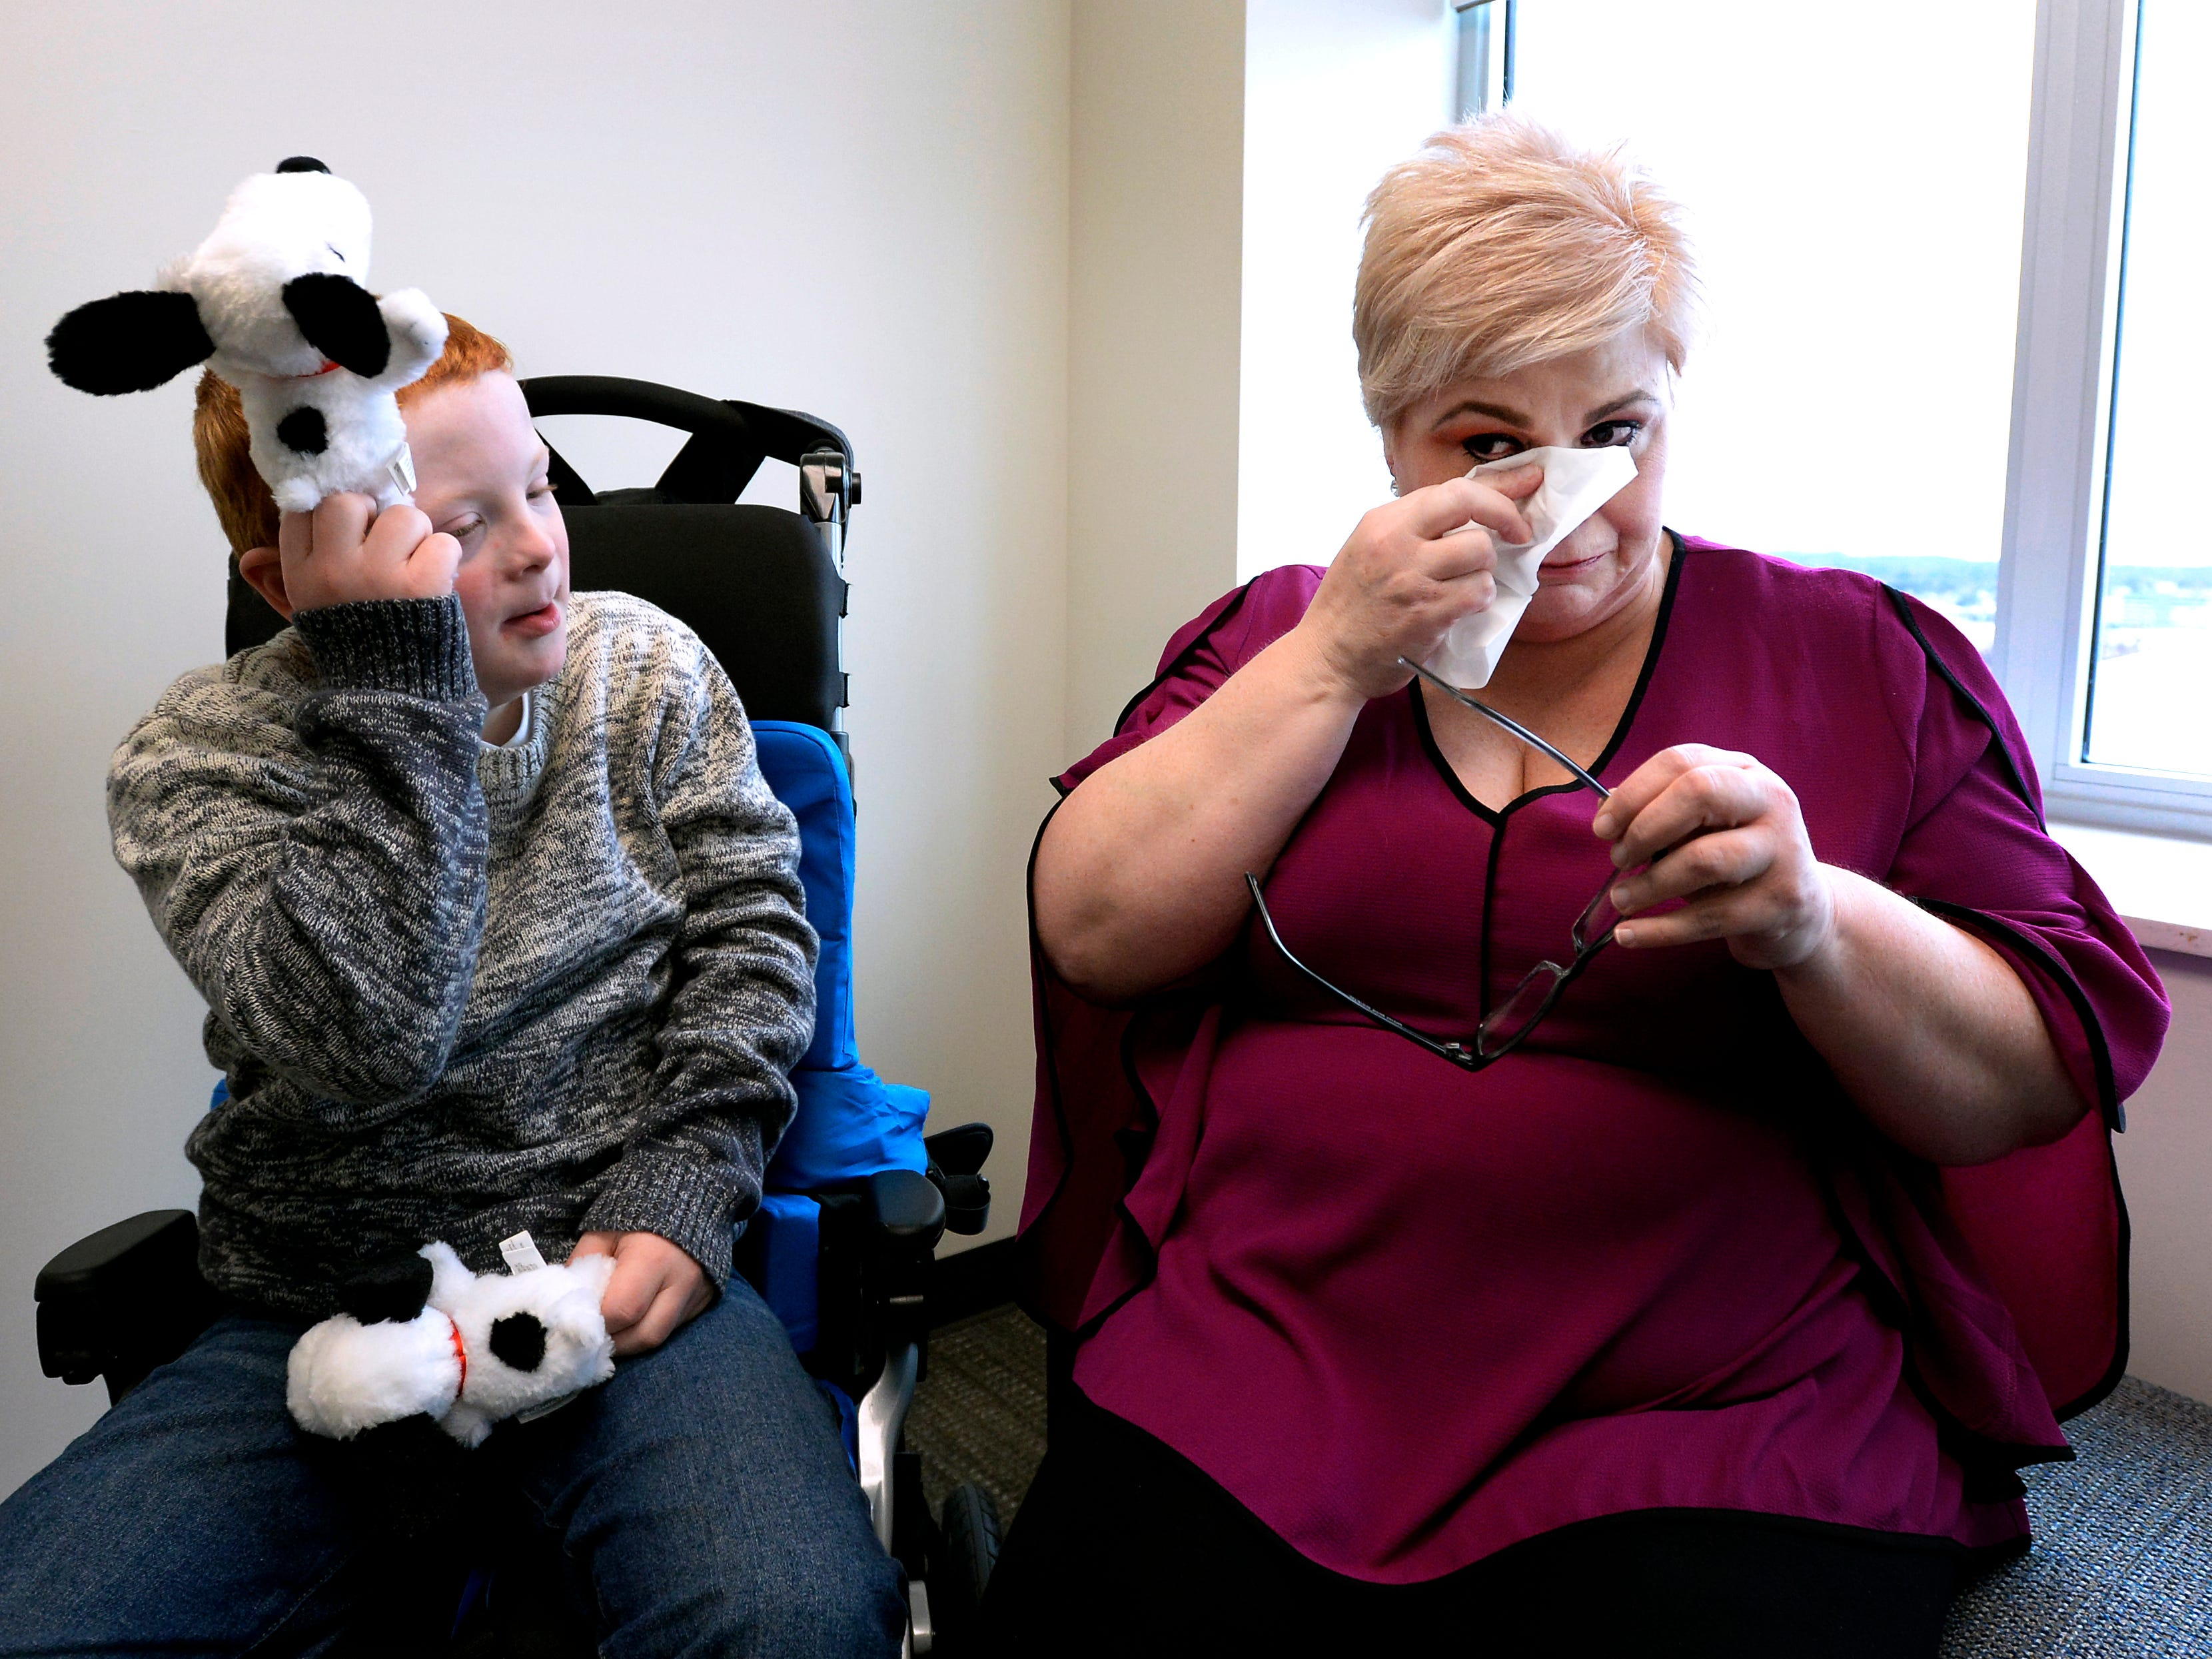 Single mother Jennifer Schultz cries as she talks about taking care of her son Hatcher Ryan, 10, who has Down Syndrome, as they wait to speak with Tennessee State senators during Disability Day on the Hill Tuesday, Feb. 12, 2019, in Nashville, Tenn. Families and advocates of people with disabilities in Tennessee met with lawmakers to express concerns and the needs of the disabled in the state.